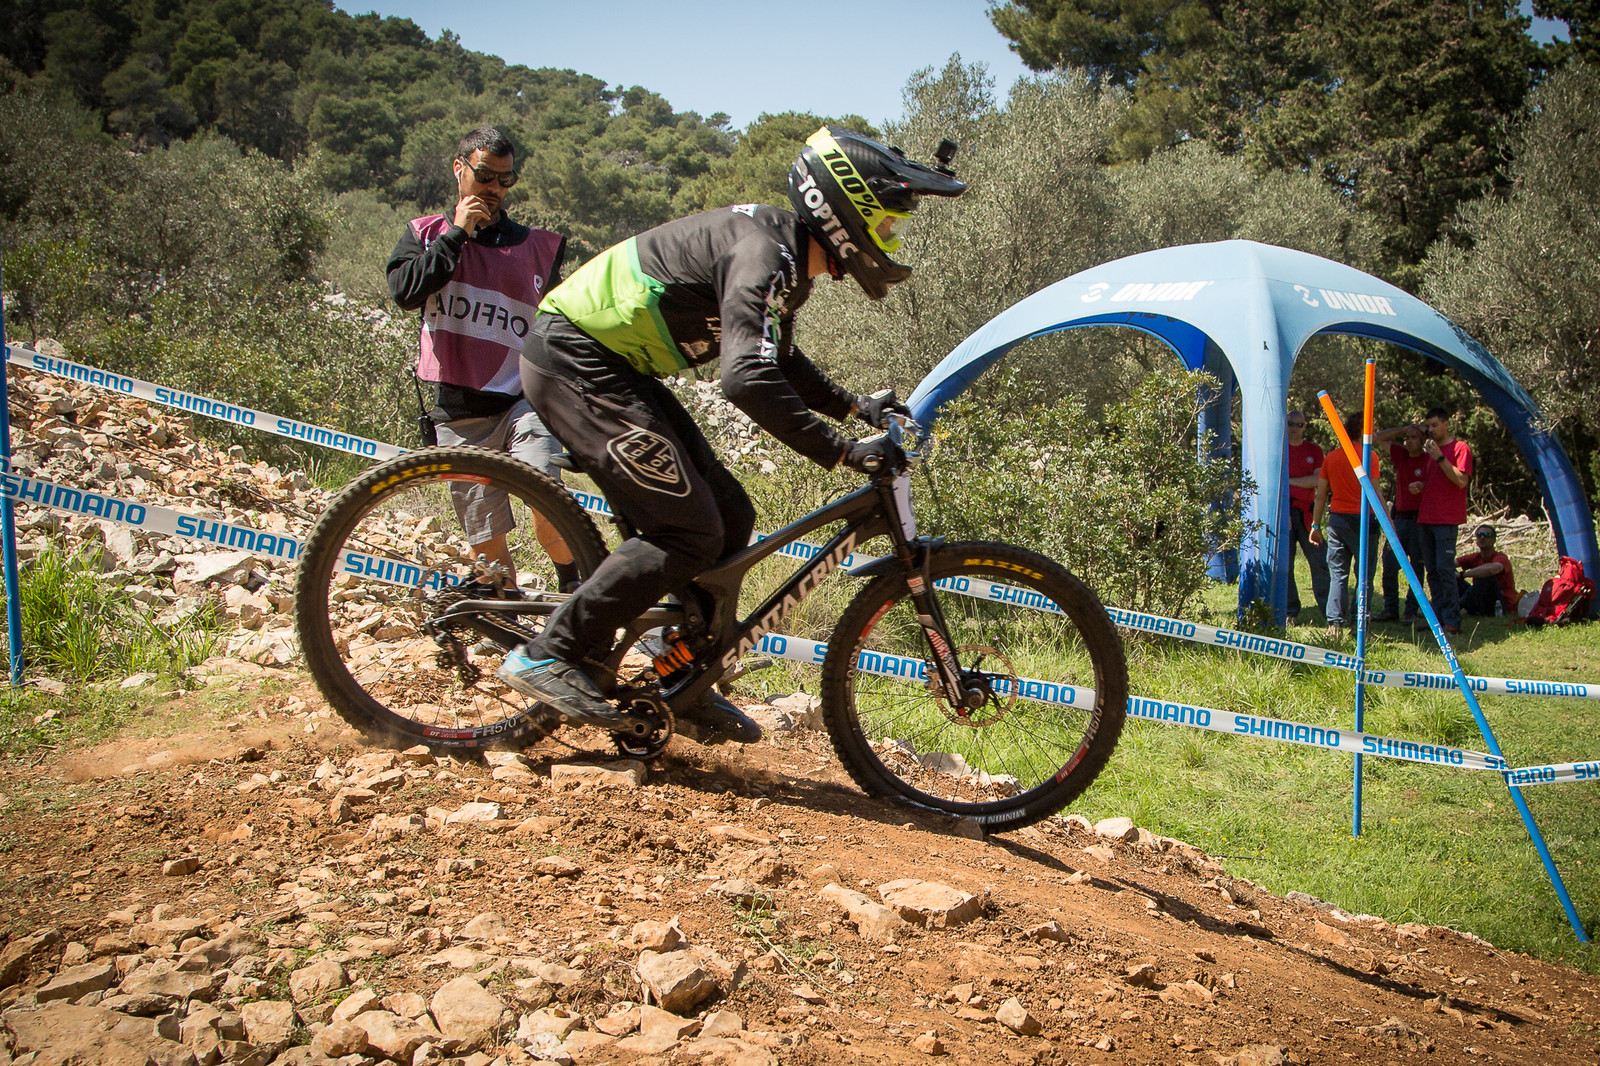 Santa Cruz V10 G-Out - G-Out Project - Croatia World Cup DH - Mountain Biking Pictures - Vital MTB